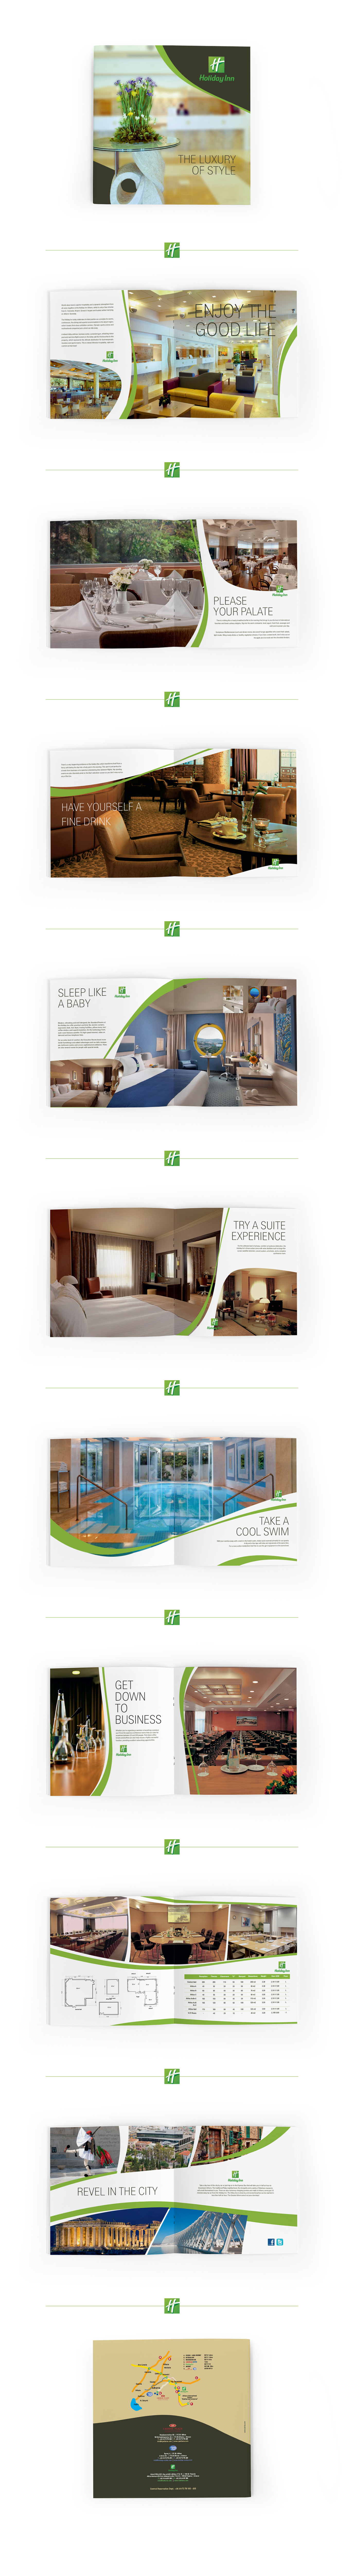 Holiday Inn Brochure